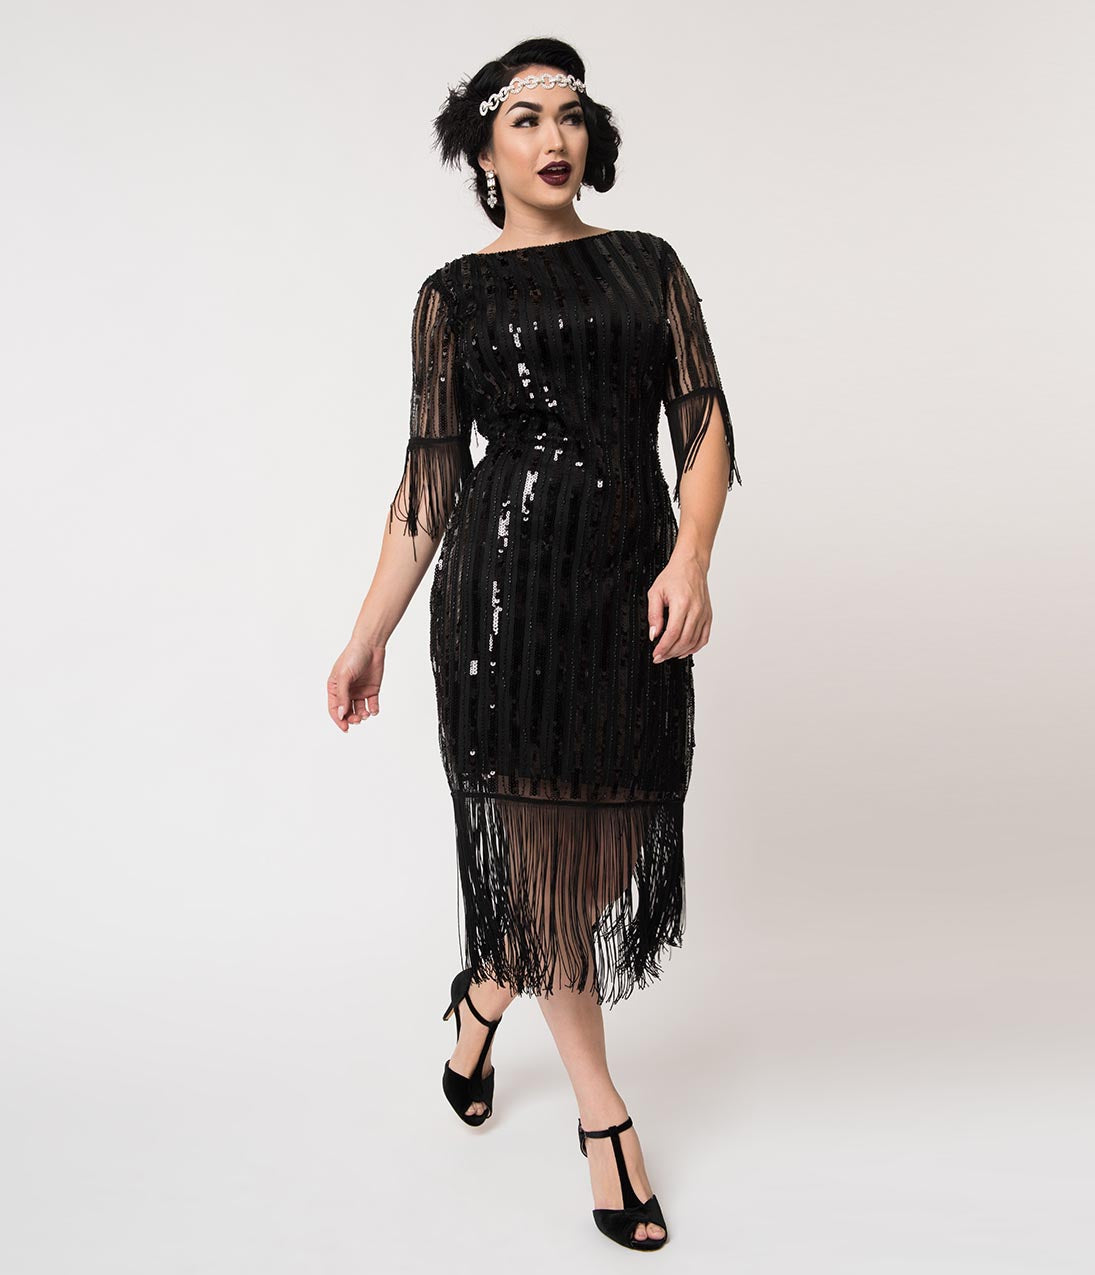 Black Flapper Dresses, 1920s Black Dresses Unique Vintage Black Sequin Fringe Sleeve Marcy Flapper Dress $98.00 AT vintagedancer.com